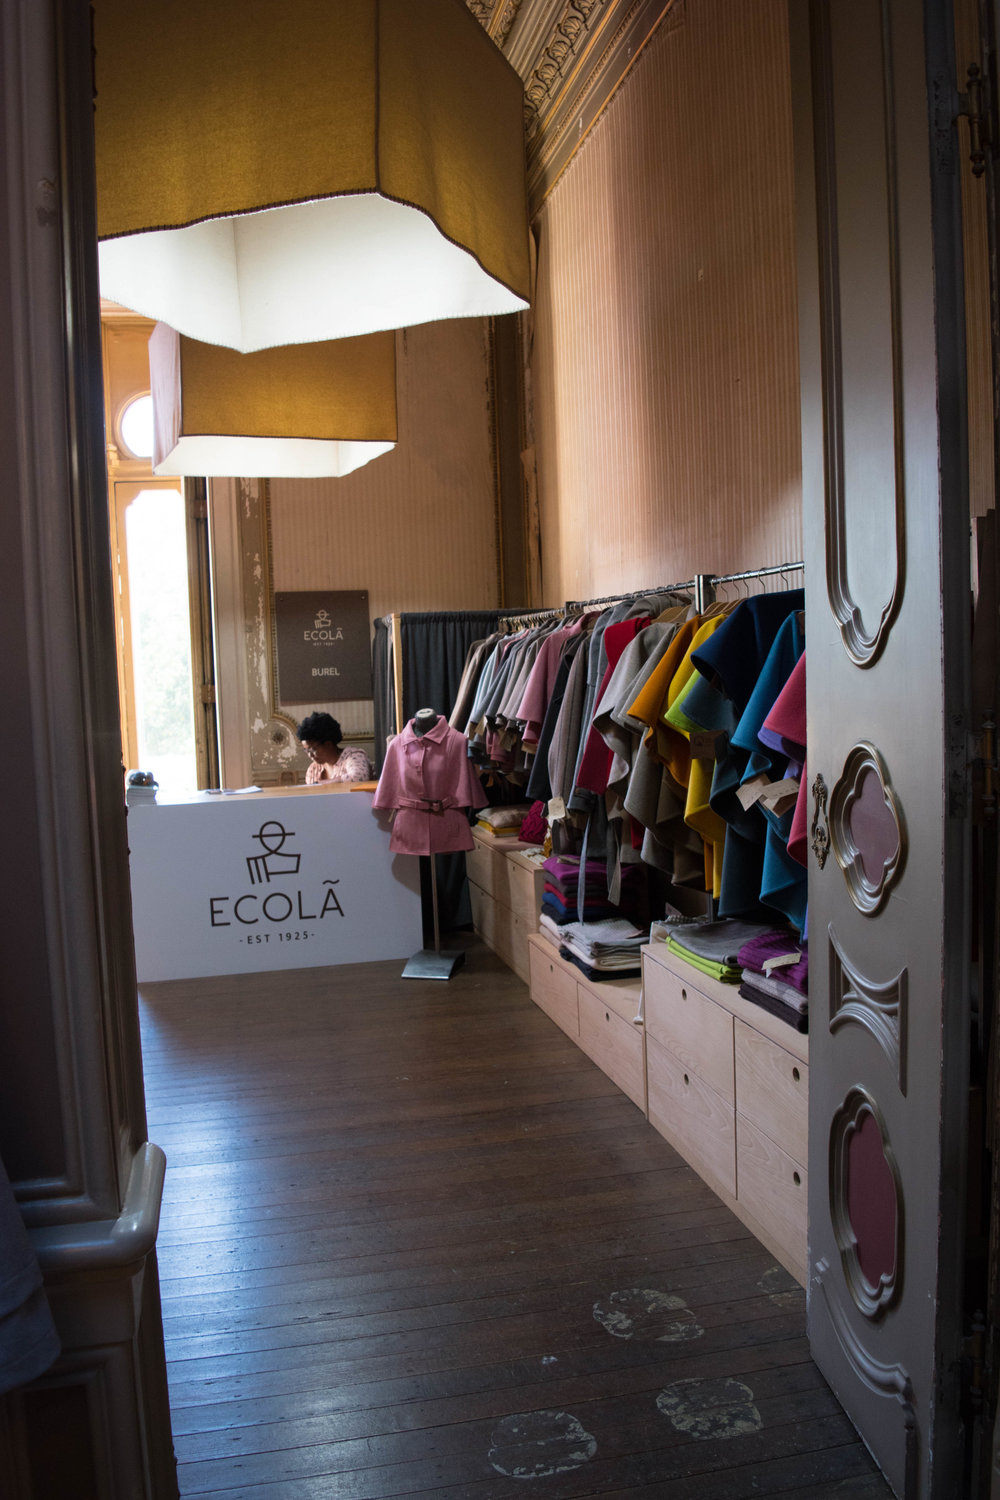 Spend time in the Embaixada palace-turned shopping gallery where Ecolã found its Lisbon home.